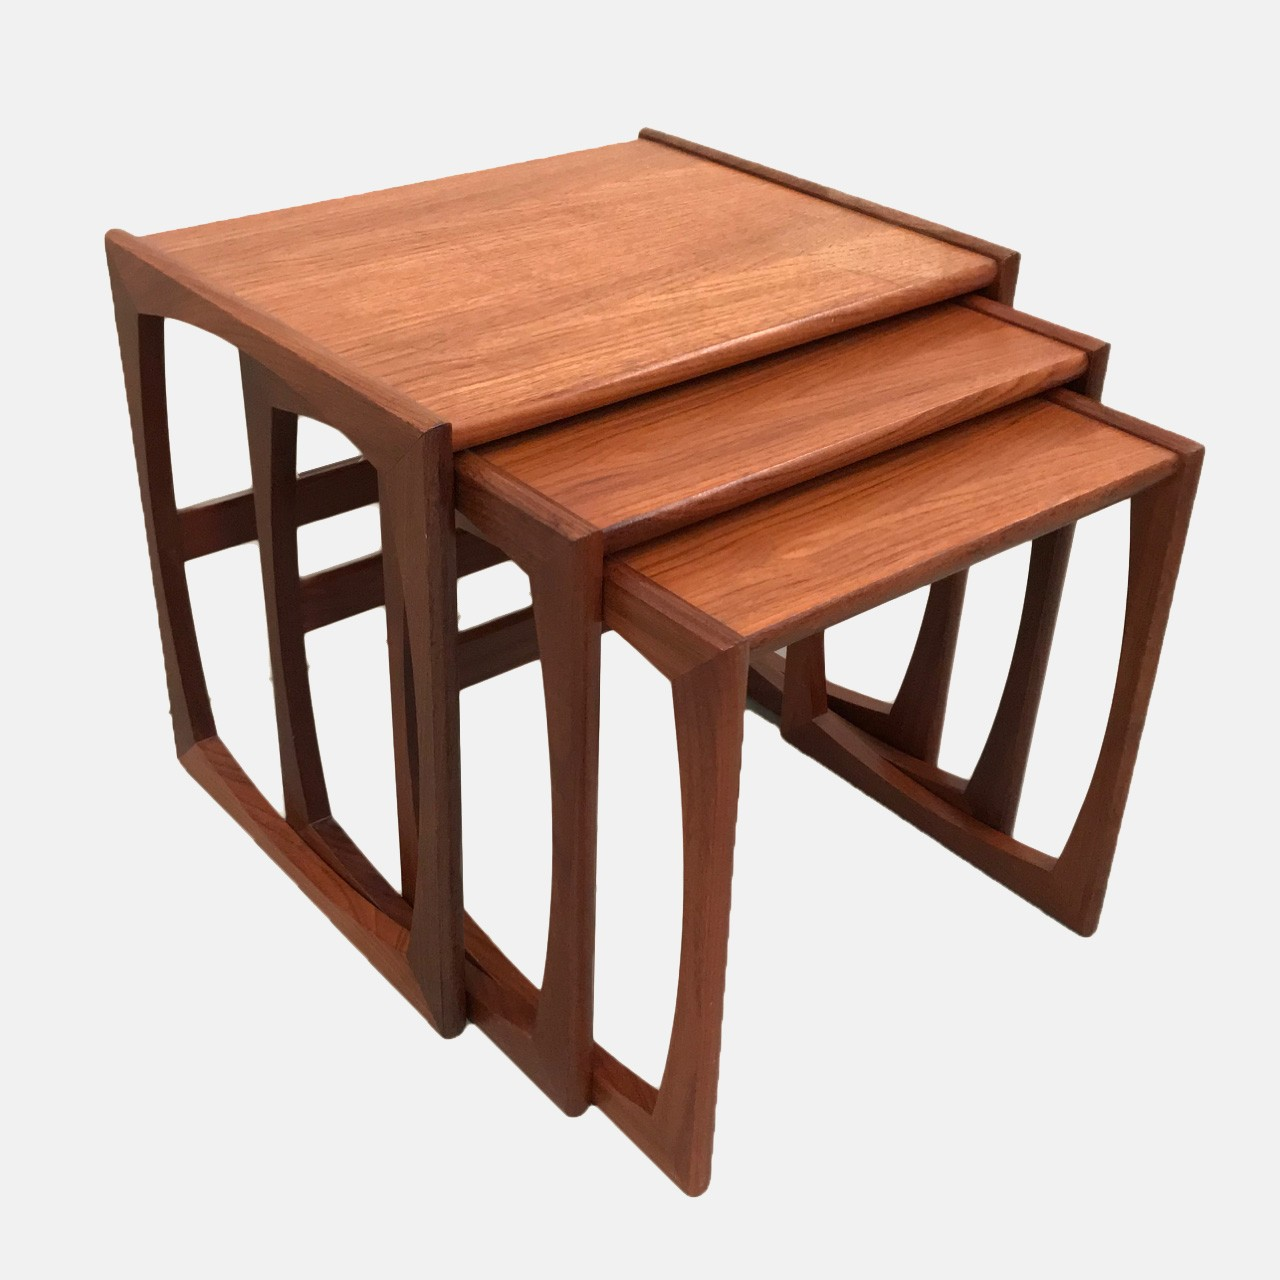 G Plan nesting tables by Victor Wilkins